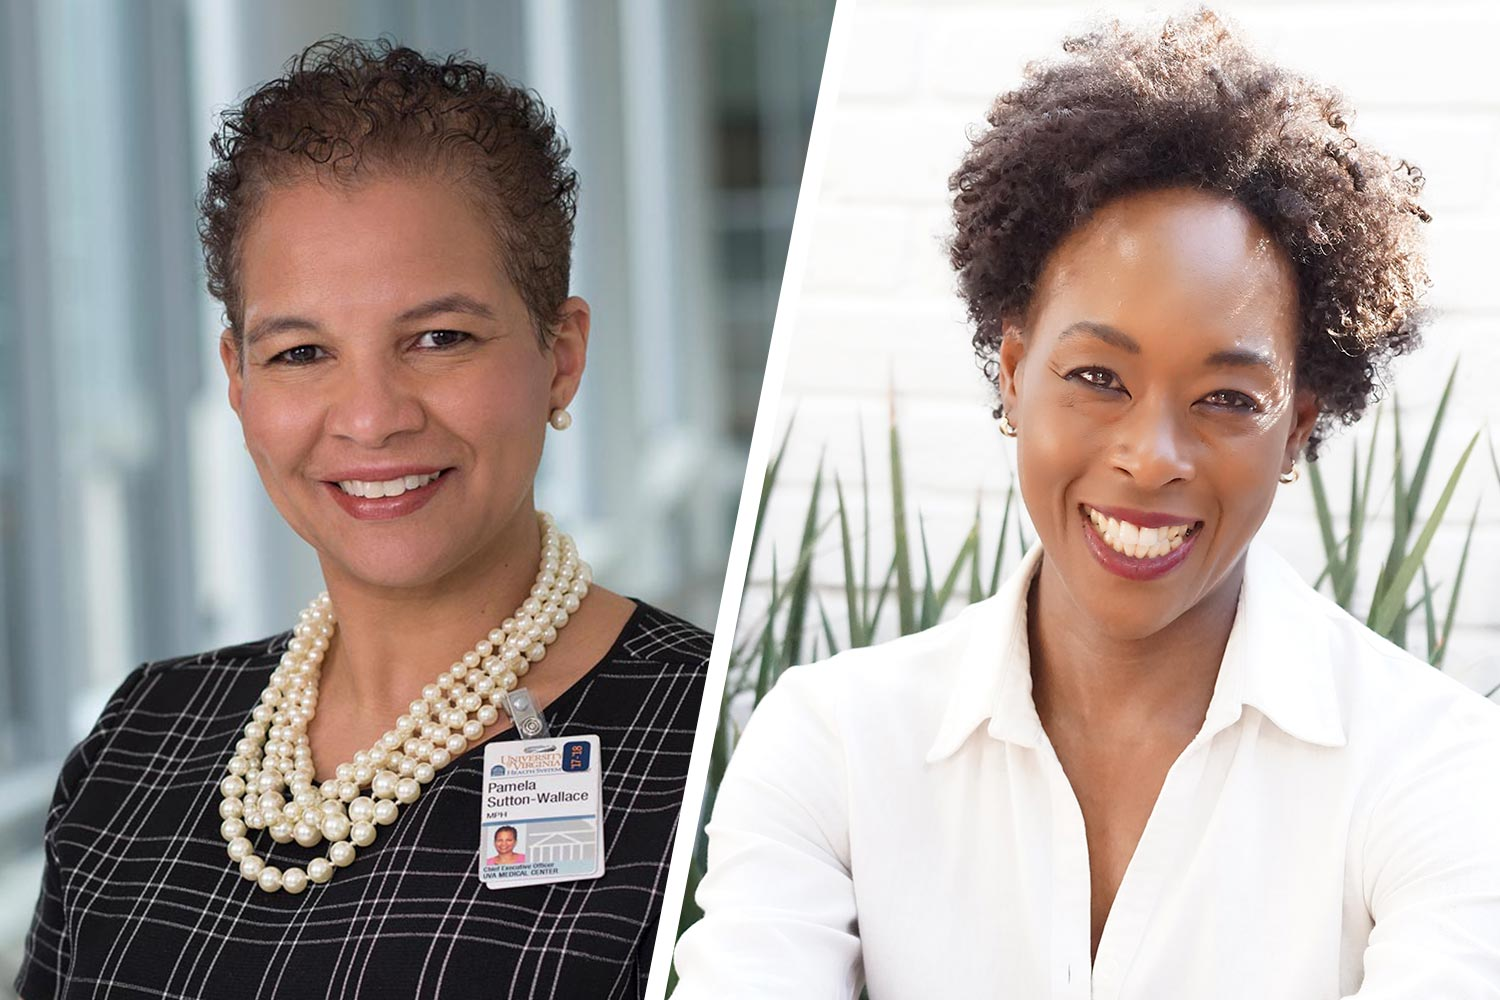 Pamela Sutton-Wallace, left, and Margot Shetterly received Alpha Kappa Alpha sorority's EPOCH Awards for health and global impact and the arts, respectively. (Photos by Jackson Smith and Aran Shetterly)